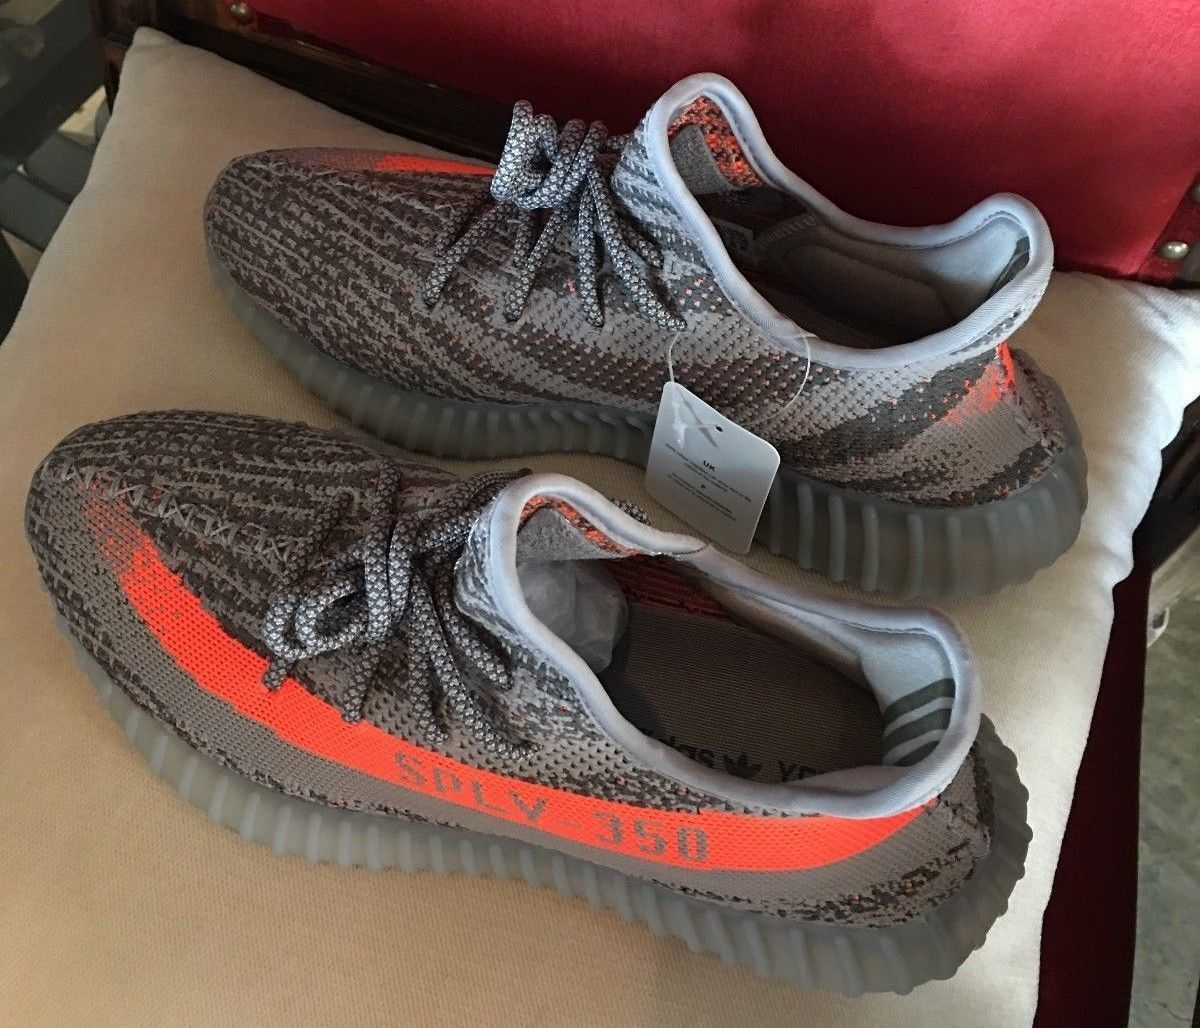 d6dbe8ddc933d Adidas Yeezy 350 Boost Casual Green New Disbursement Unisex Low Running  Shoes